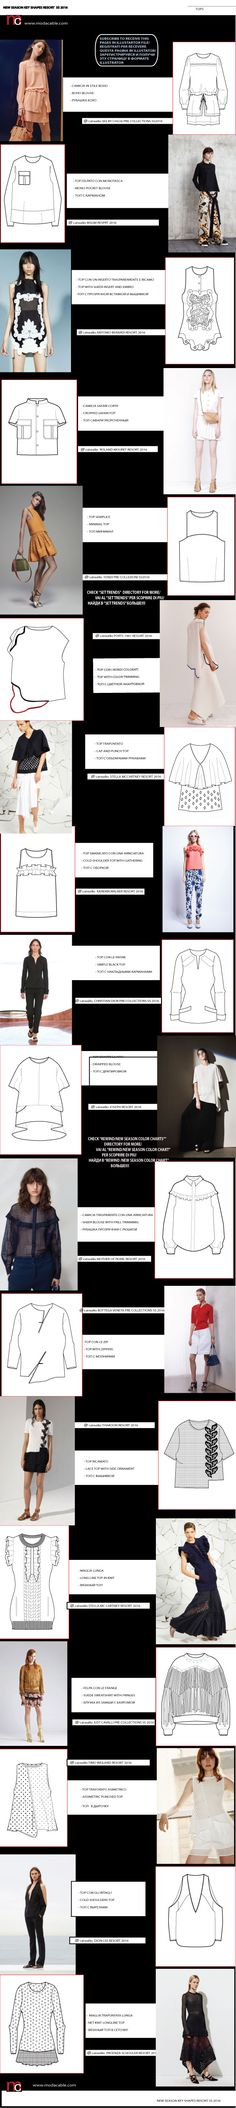 How the clothes look like as designed on paper and when sewn and worn. Flat Drawings, Flat Sketches, Technical Drawings, Fashion Flats, Diy Fashion, Fashion Design, Fashion Sketchbook, Fashion Sketches, Clothing Patterns